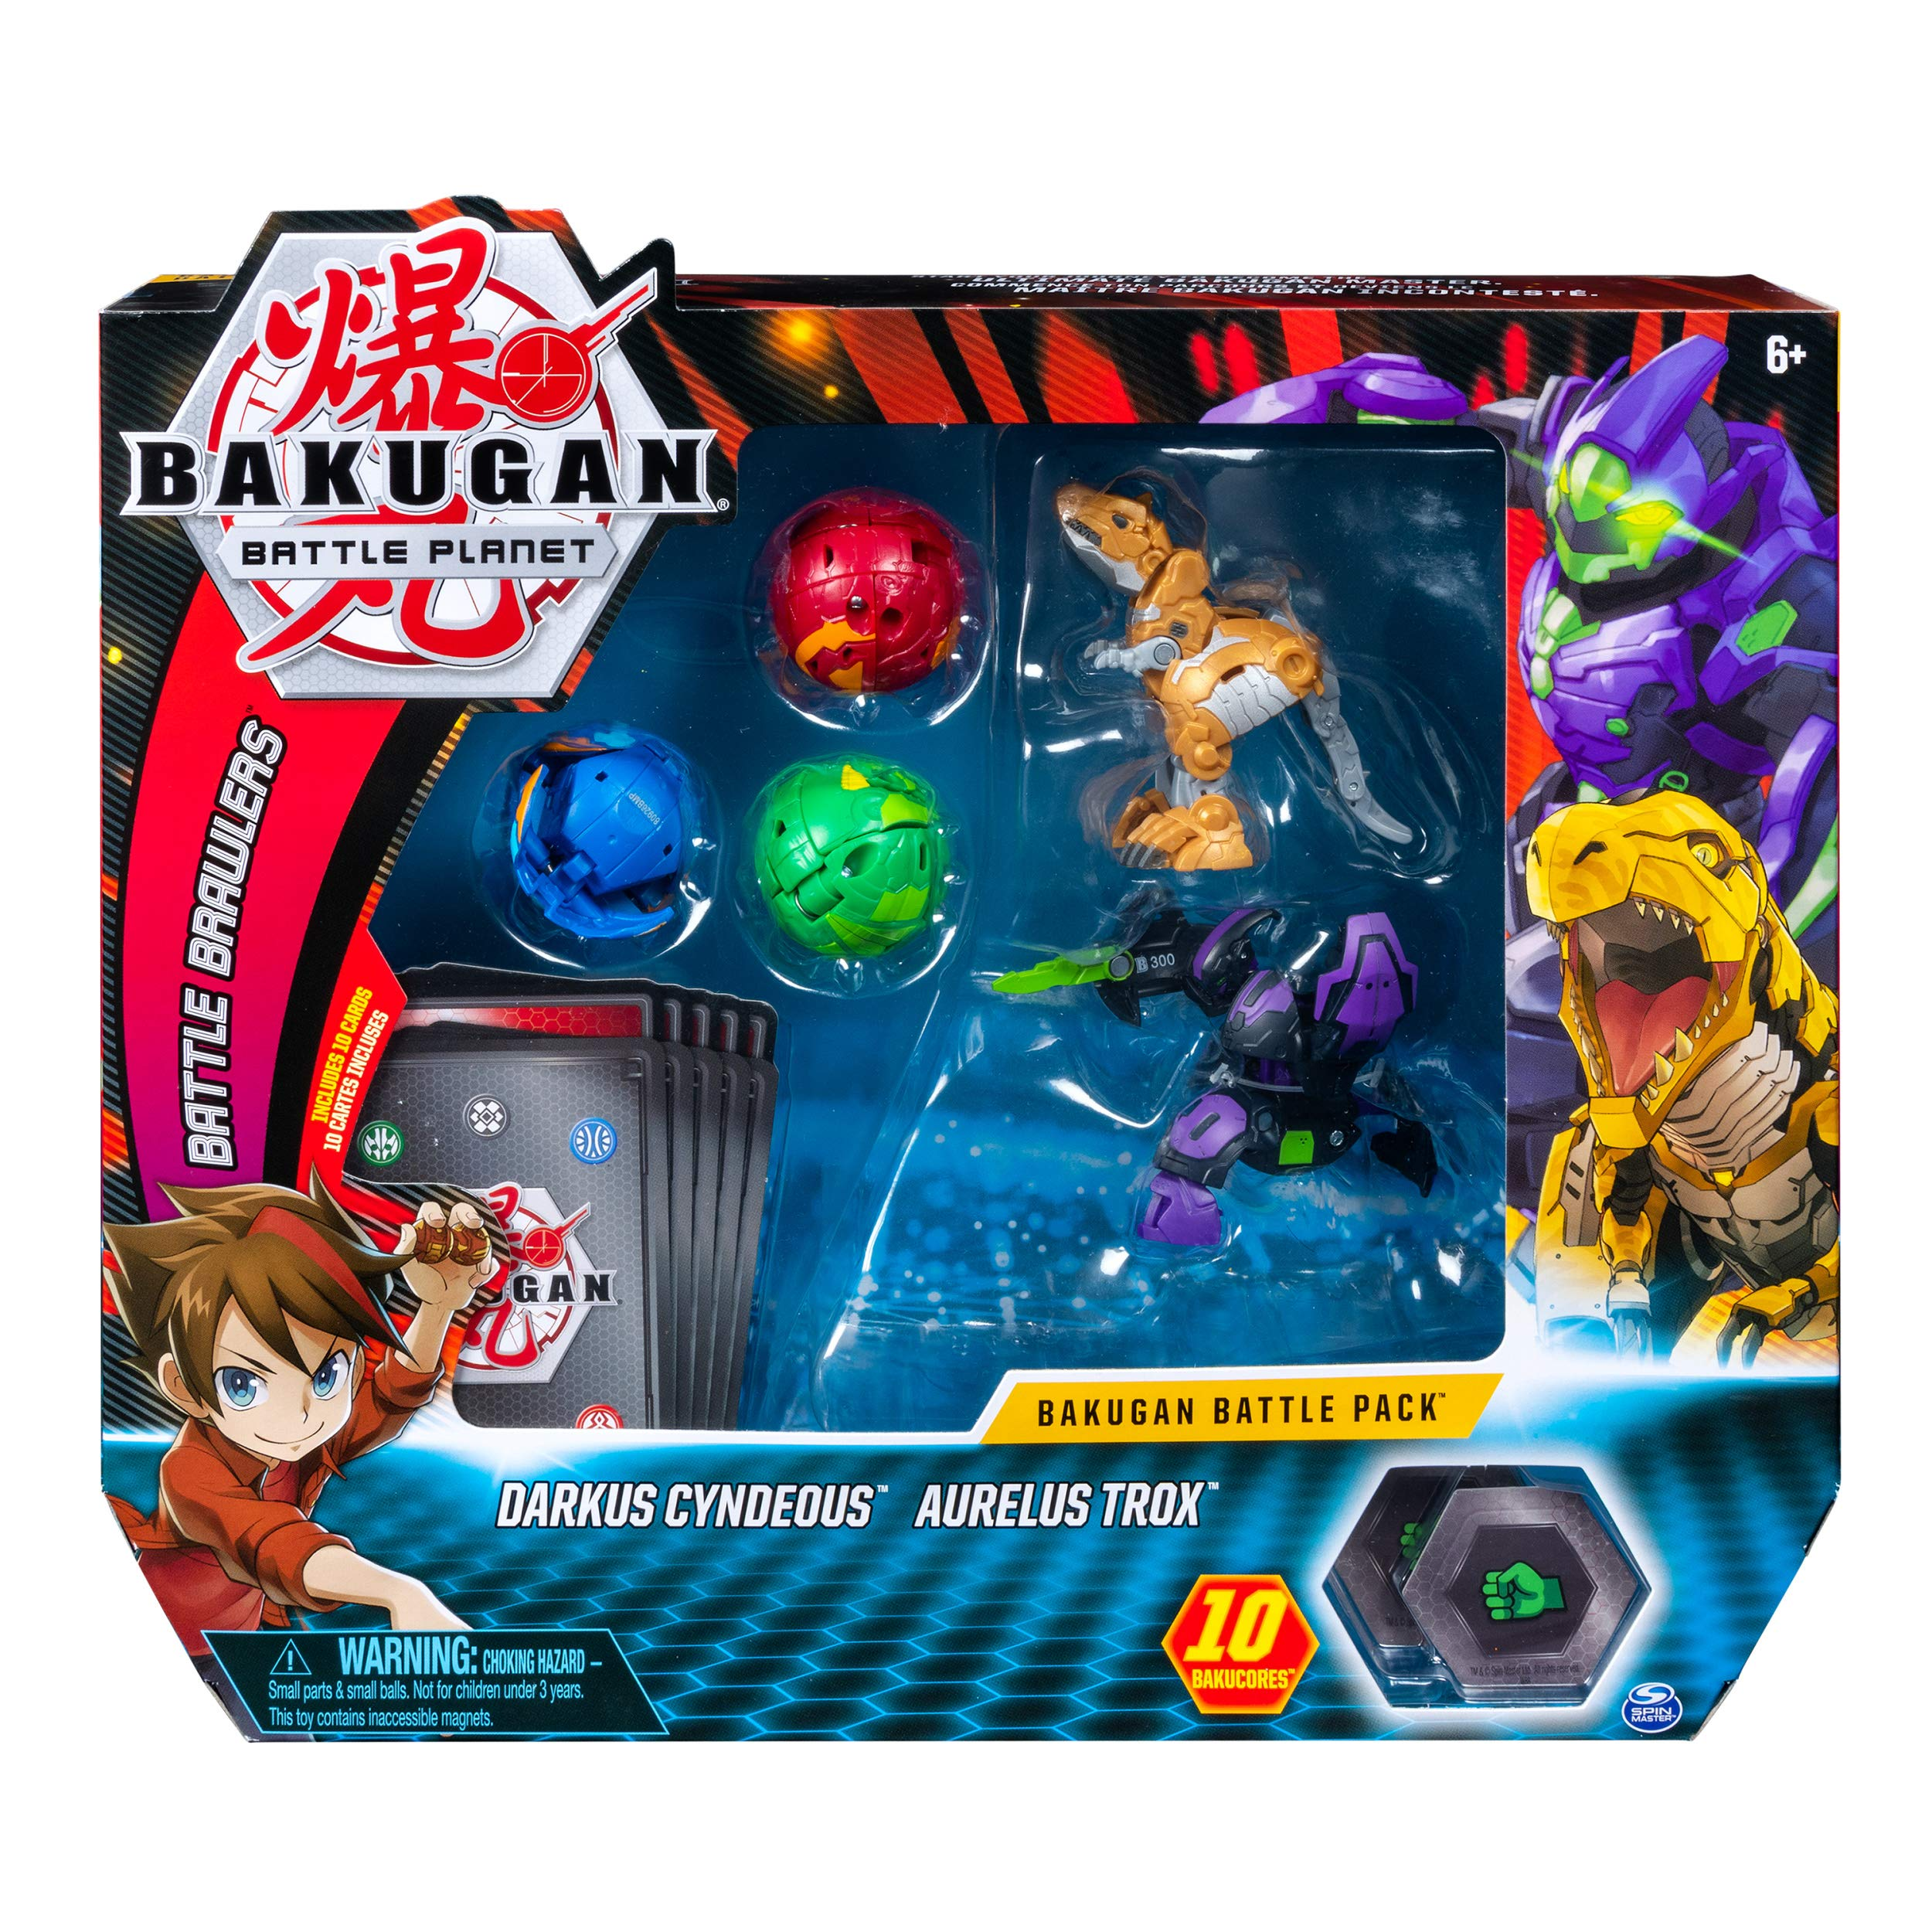 Bakugan, Battle Pack 5-Pack, Darkus Cyndeous and Aurelus Trox, Collectible Cards and Figures, for Ages 6 and Up by Bakugan